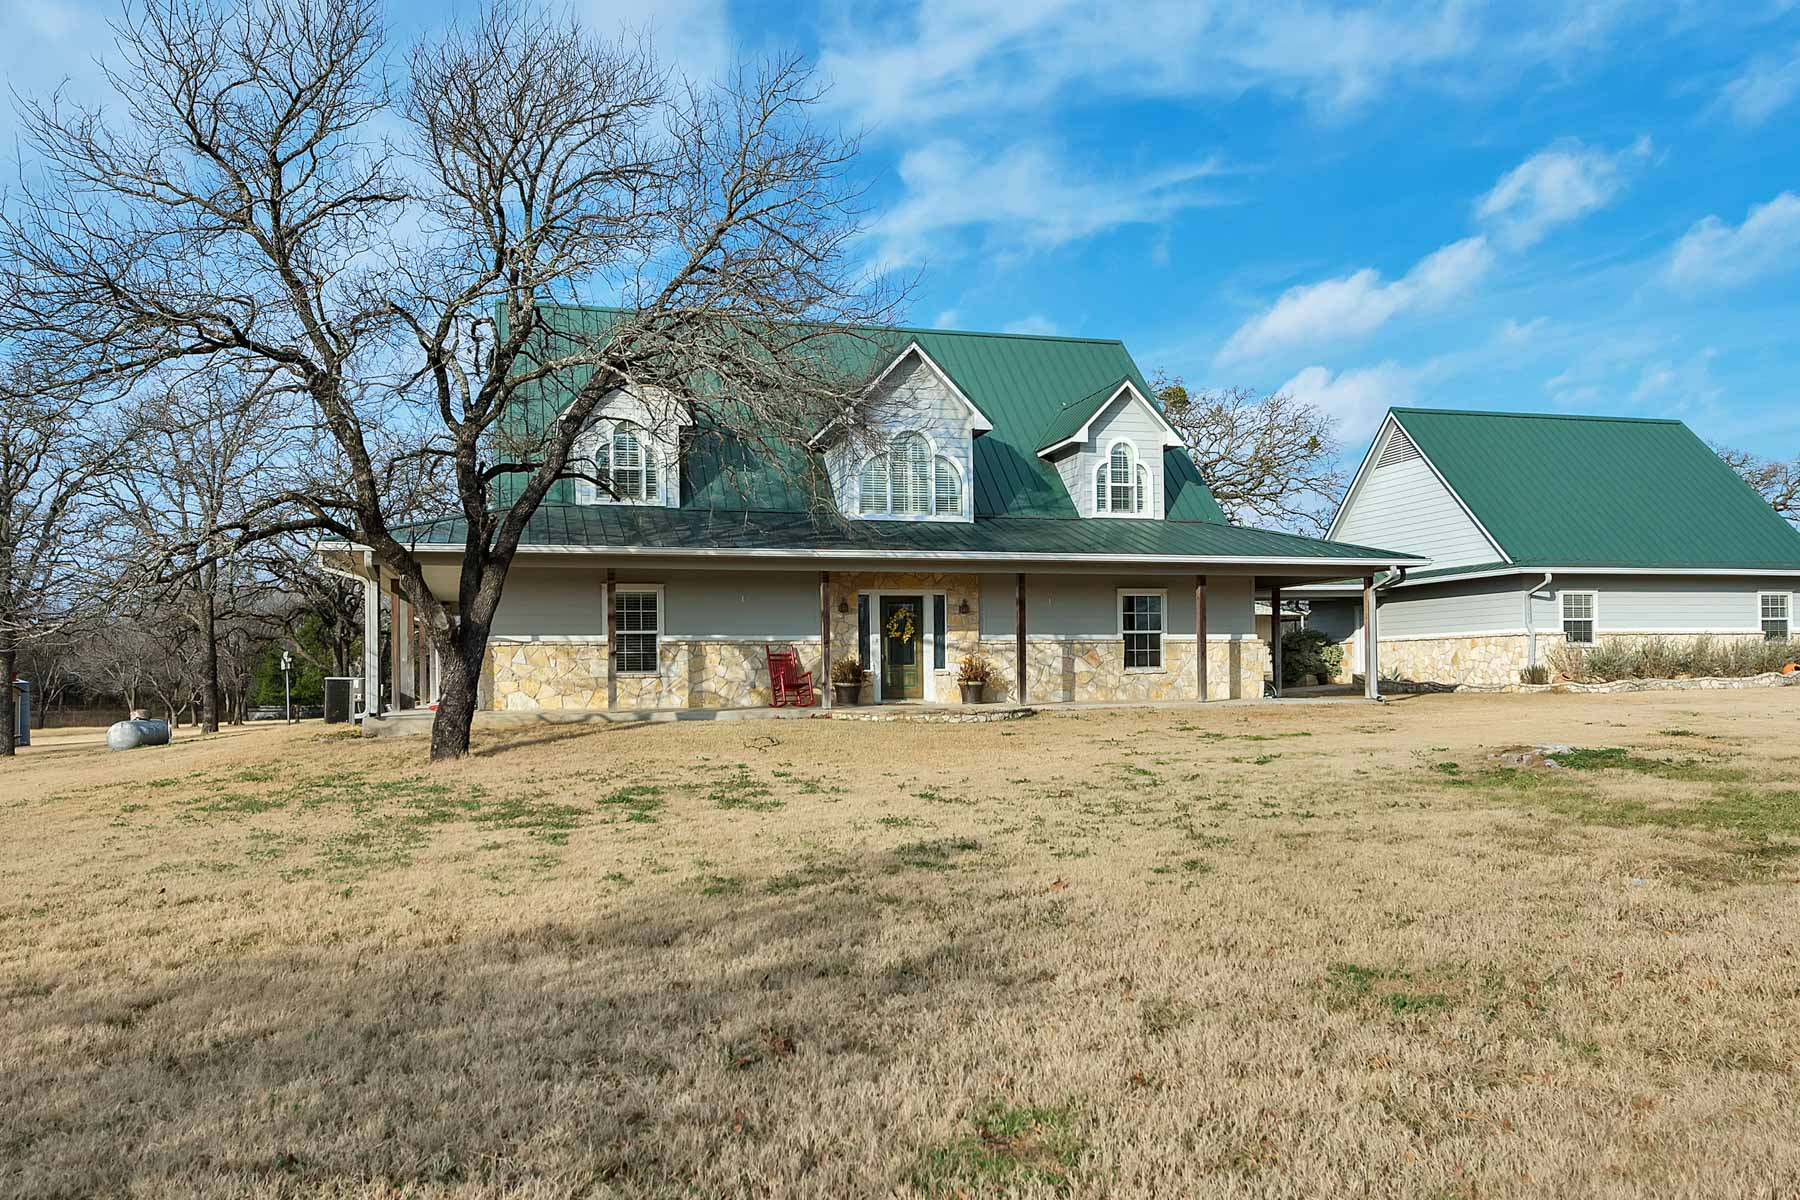 Single Family Home for Sale at 3205 FM2280, Cleburne Cleburne, Texas 76031 United States